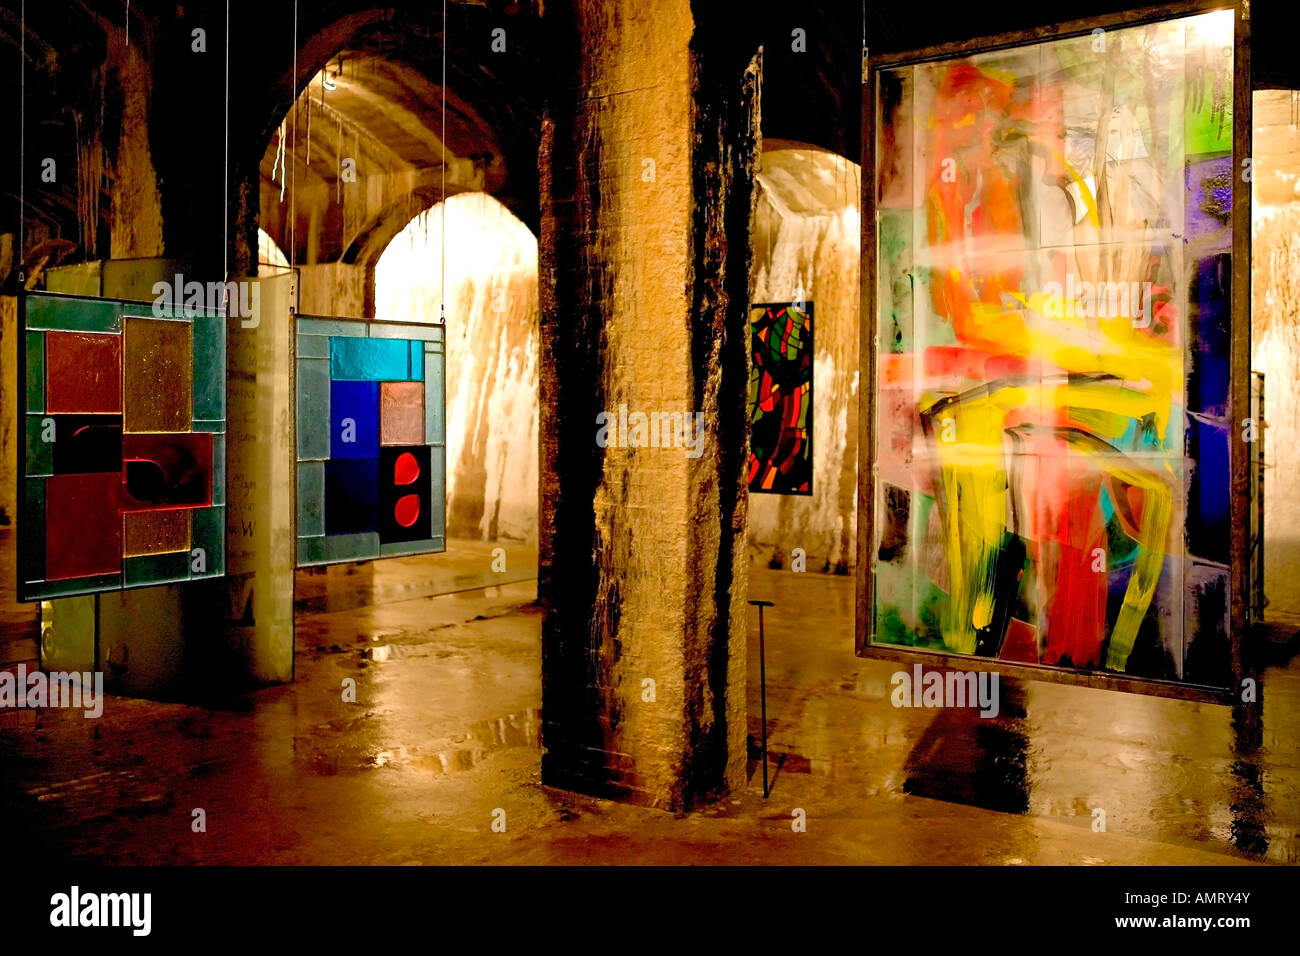 Cisternerne - Le Musée d'Art moderne en verre Photo Stock